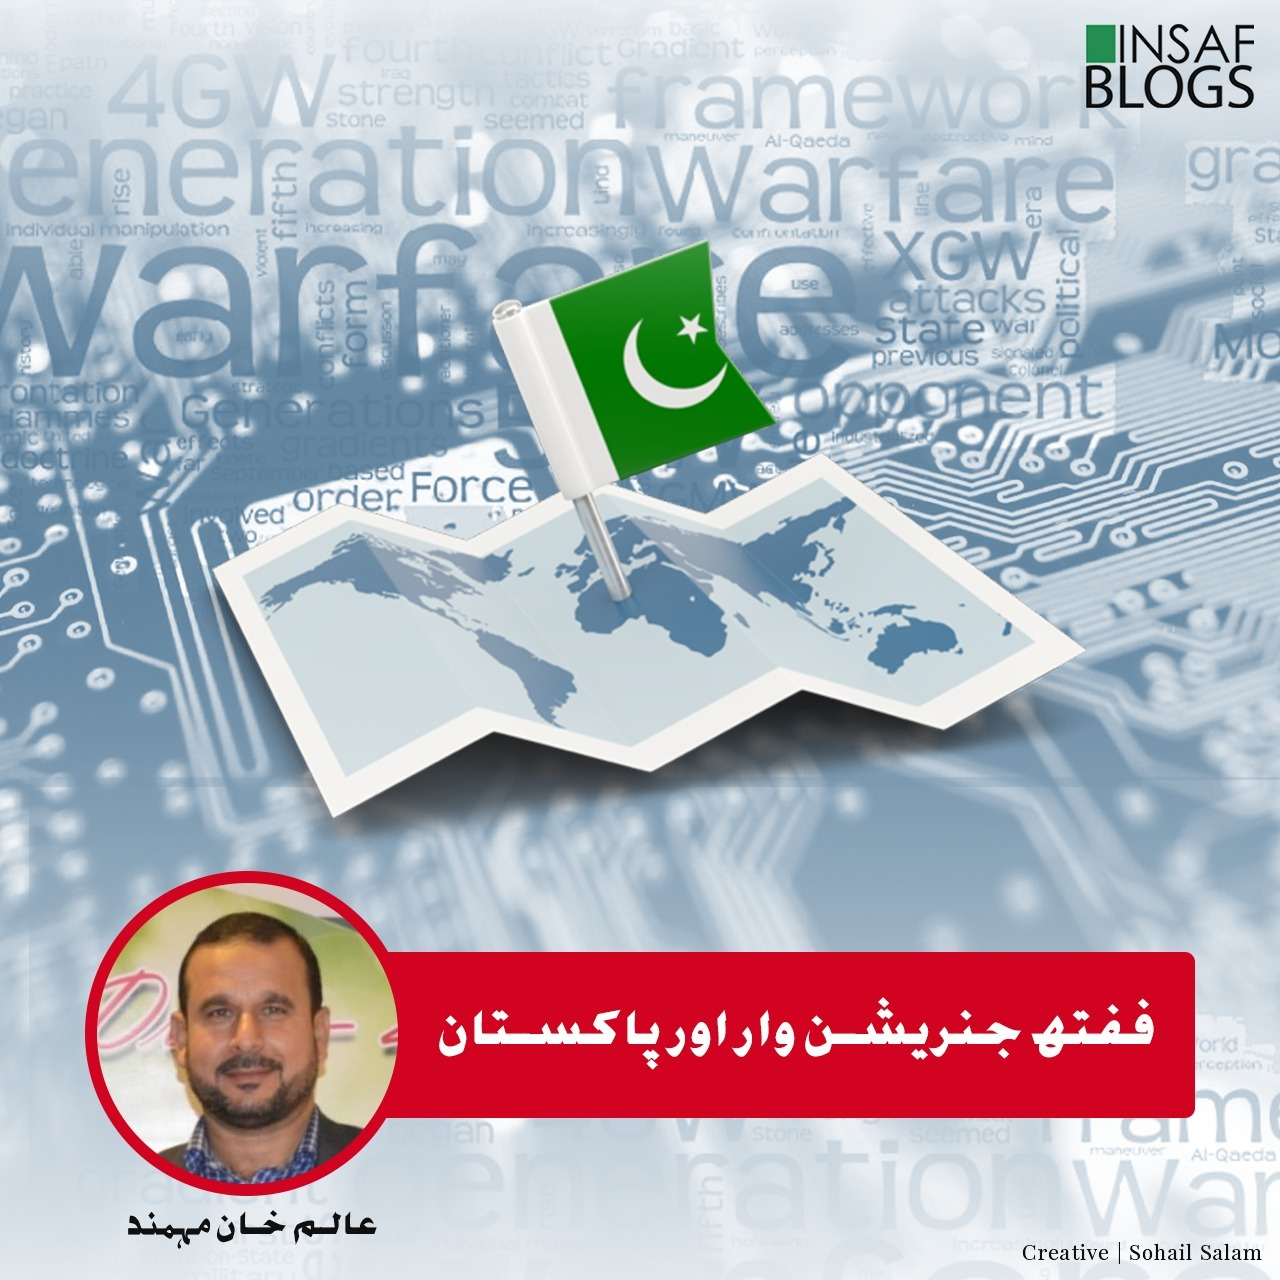 Fifth Generation Warfare Insaf Blog